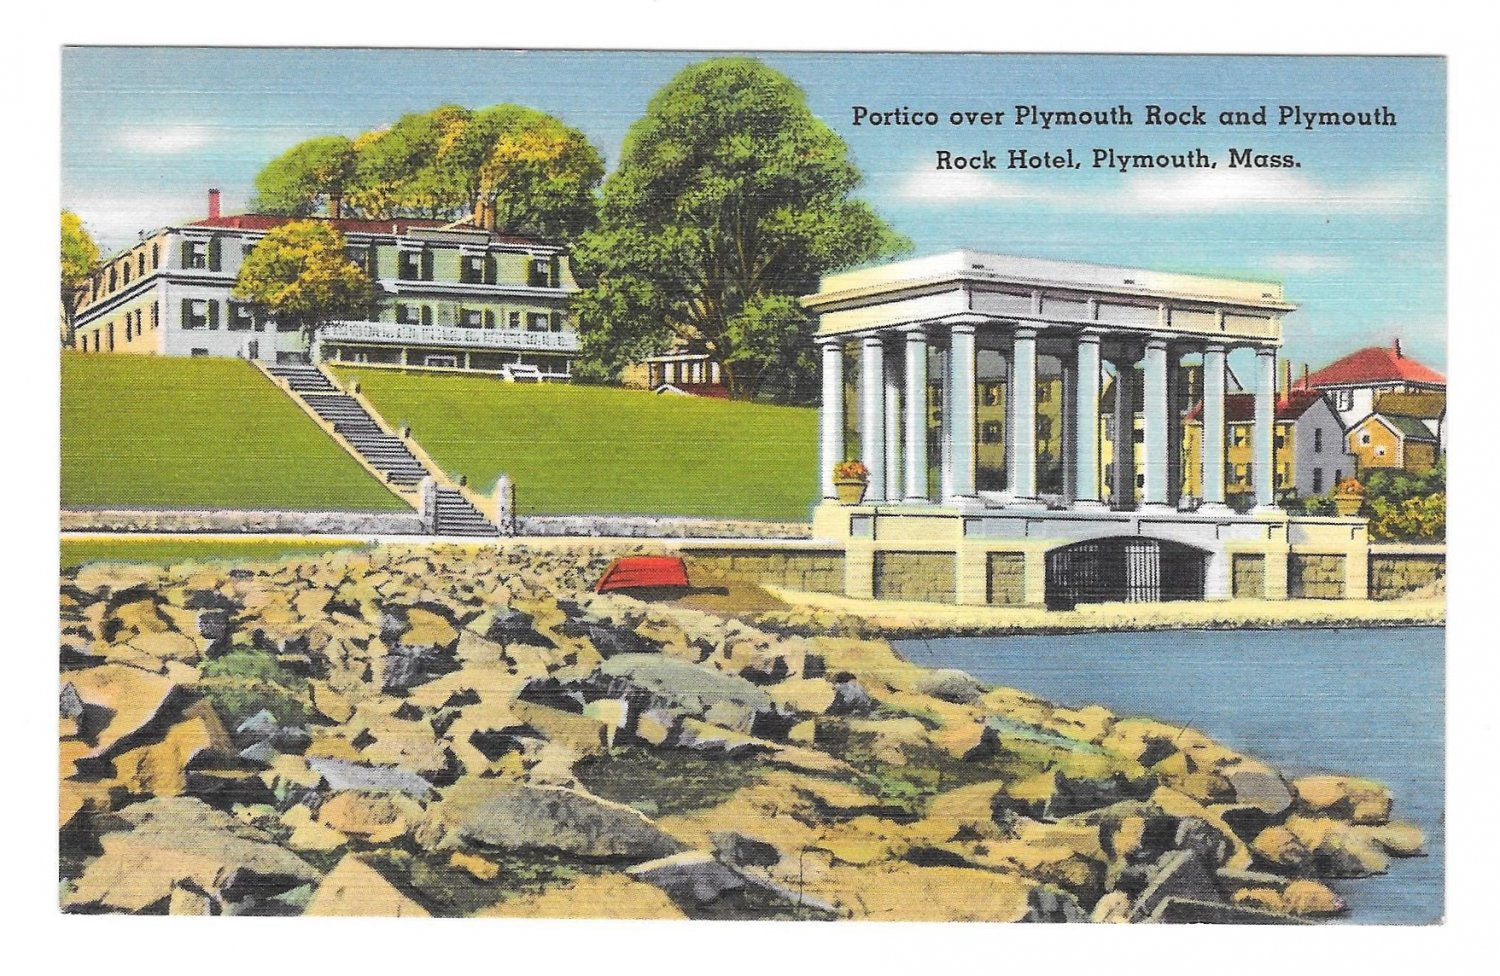 MA Portico over Plymouth Rock and Plymouth Hotel Vintage Postcard Tichnor